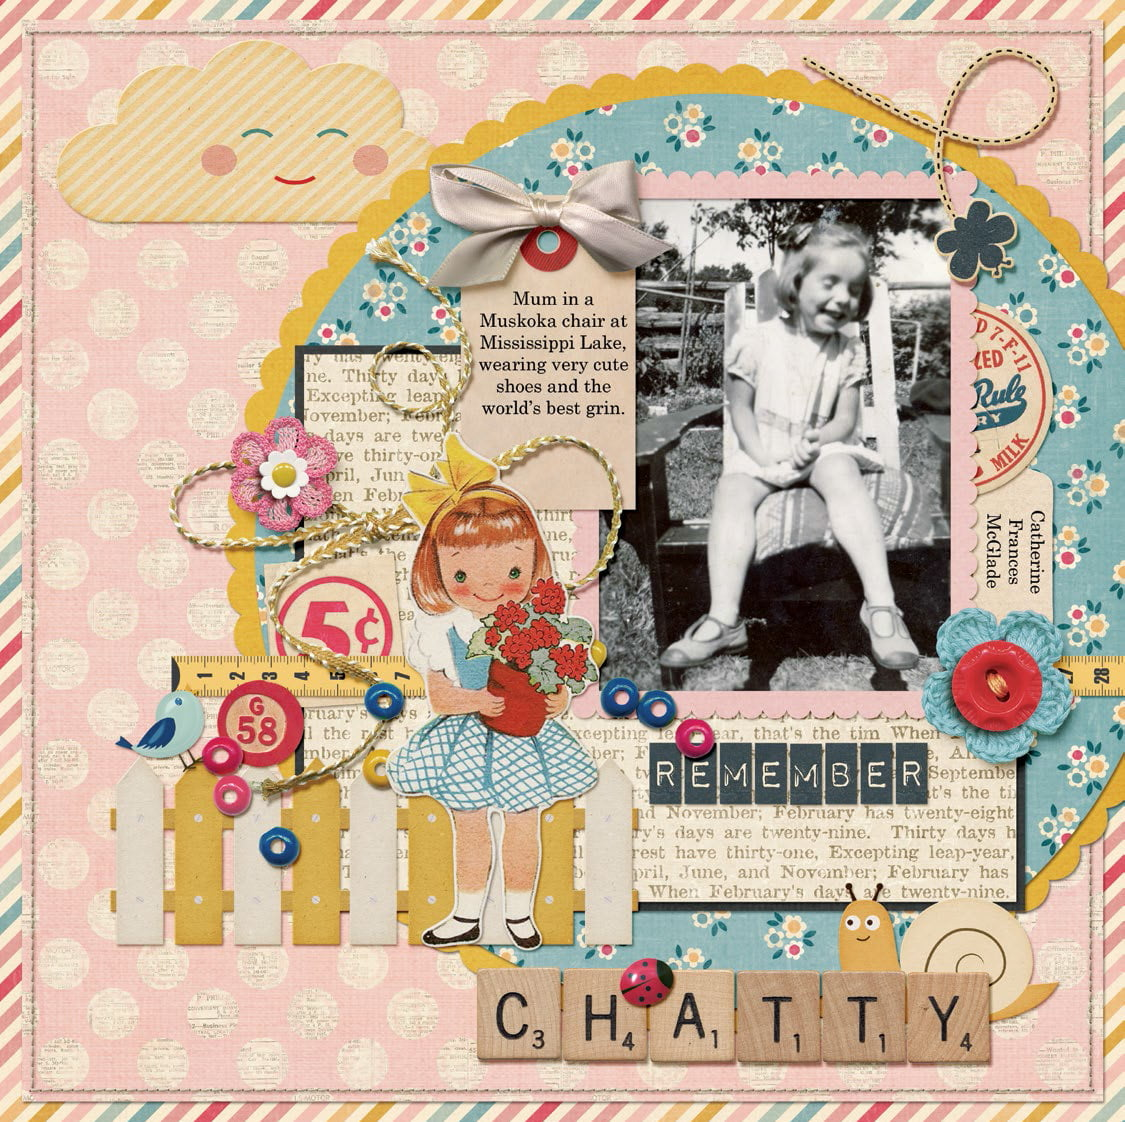 Chatty Mary by Catherine Moran for Scrapbook & Cards Today